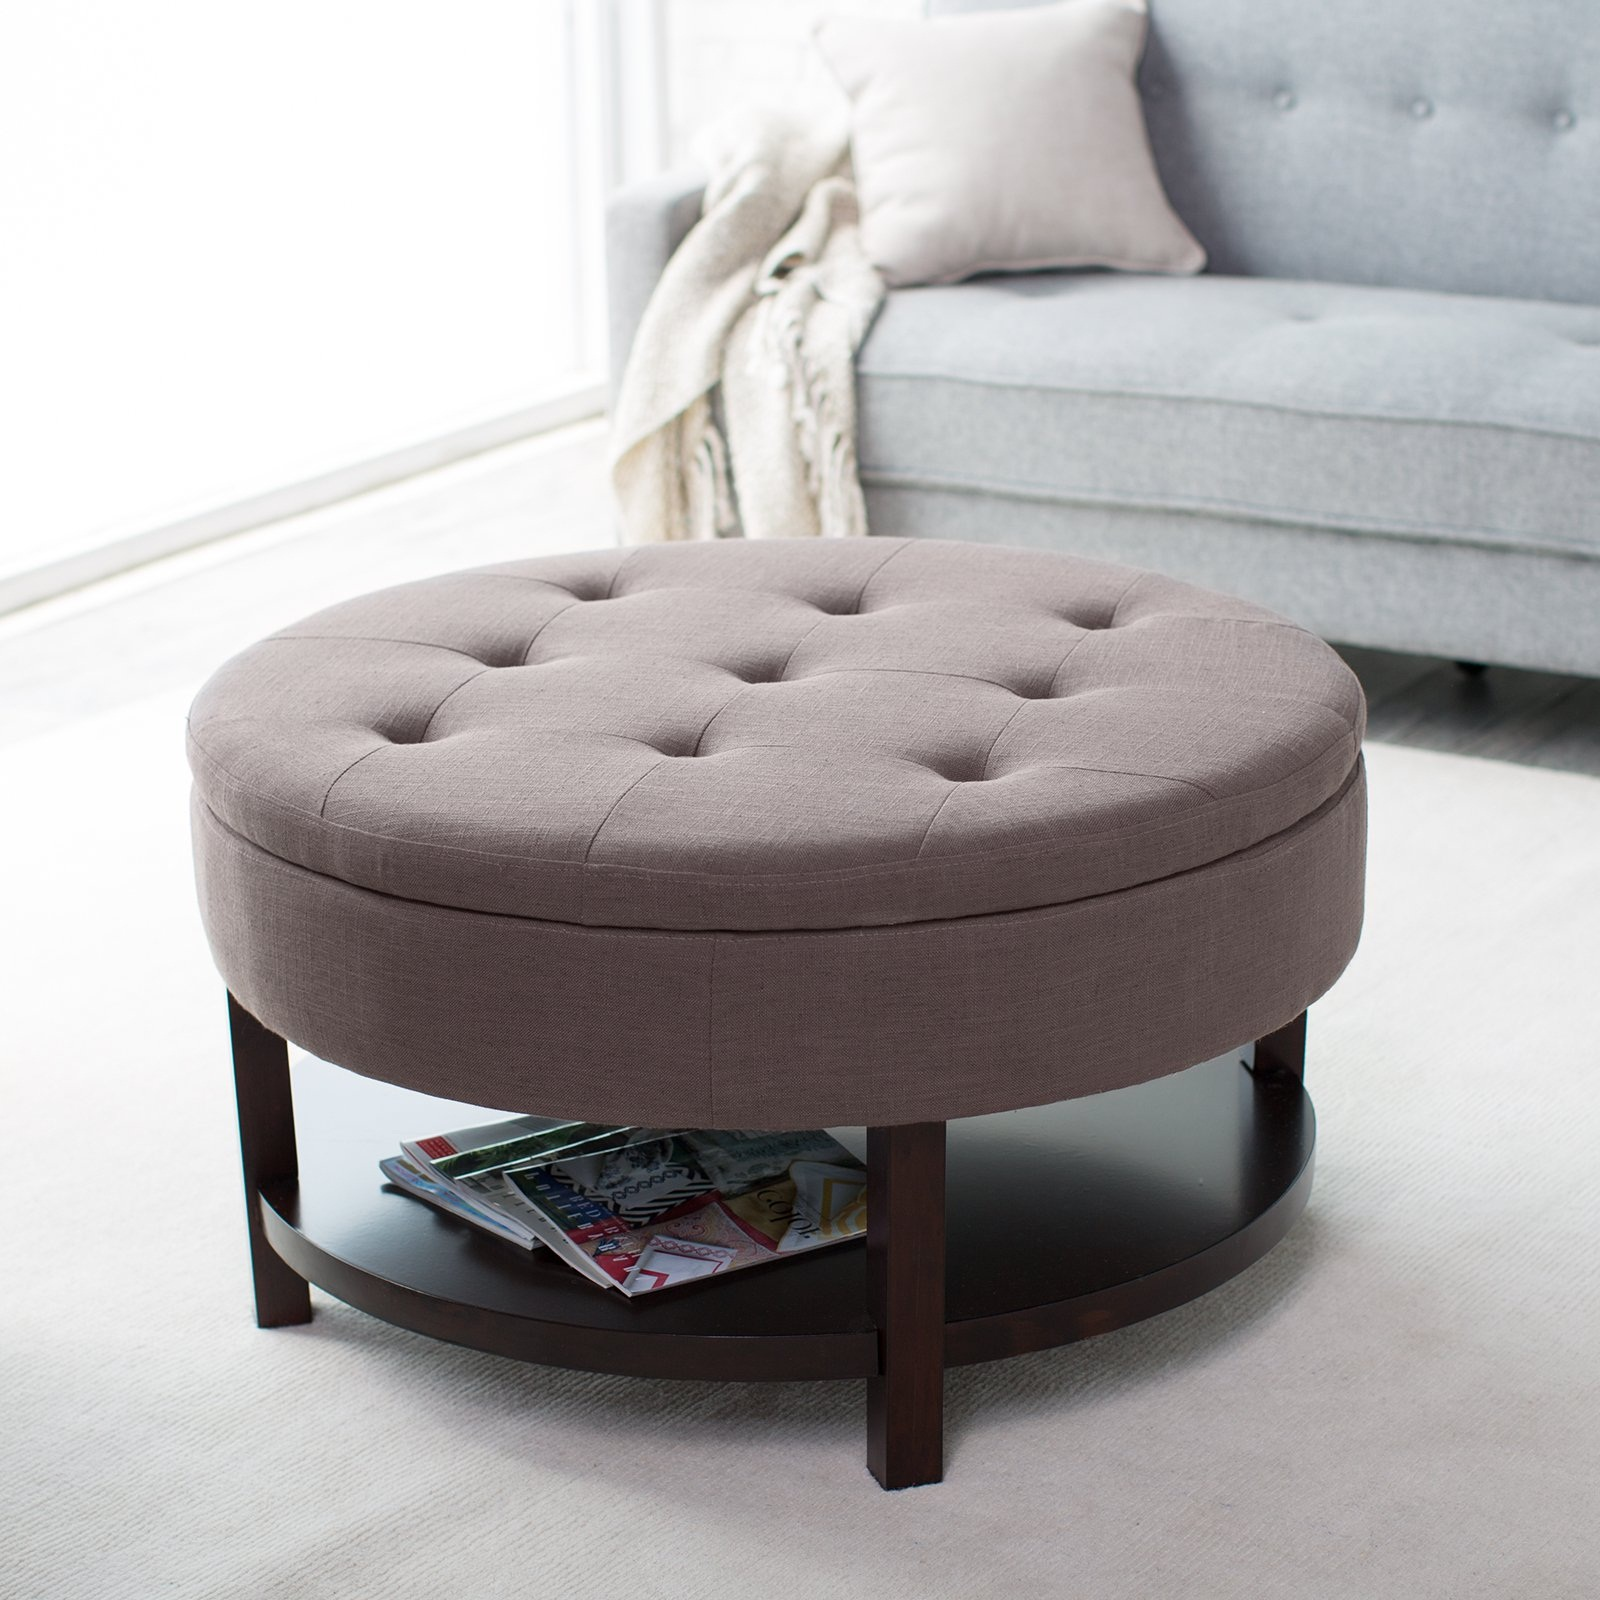 Extra Large Ottoman for Large Space Living Room Design: Oversized Storage Ottoman | Big Ottomans For Sale | Extra Large Ottoman